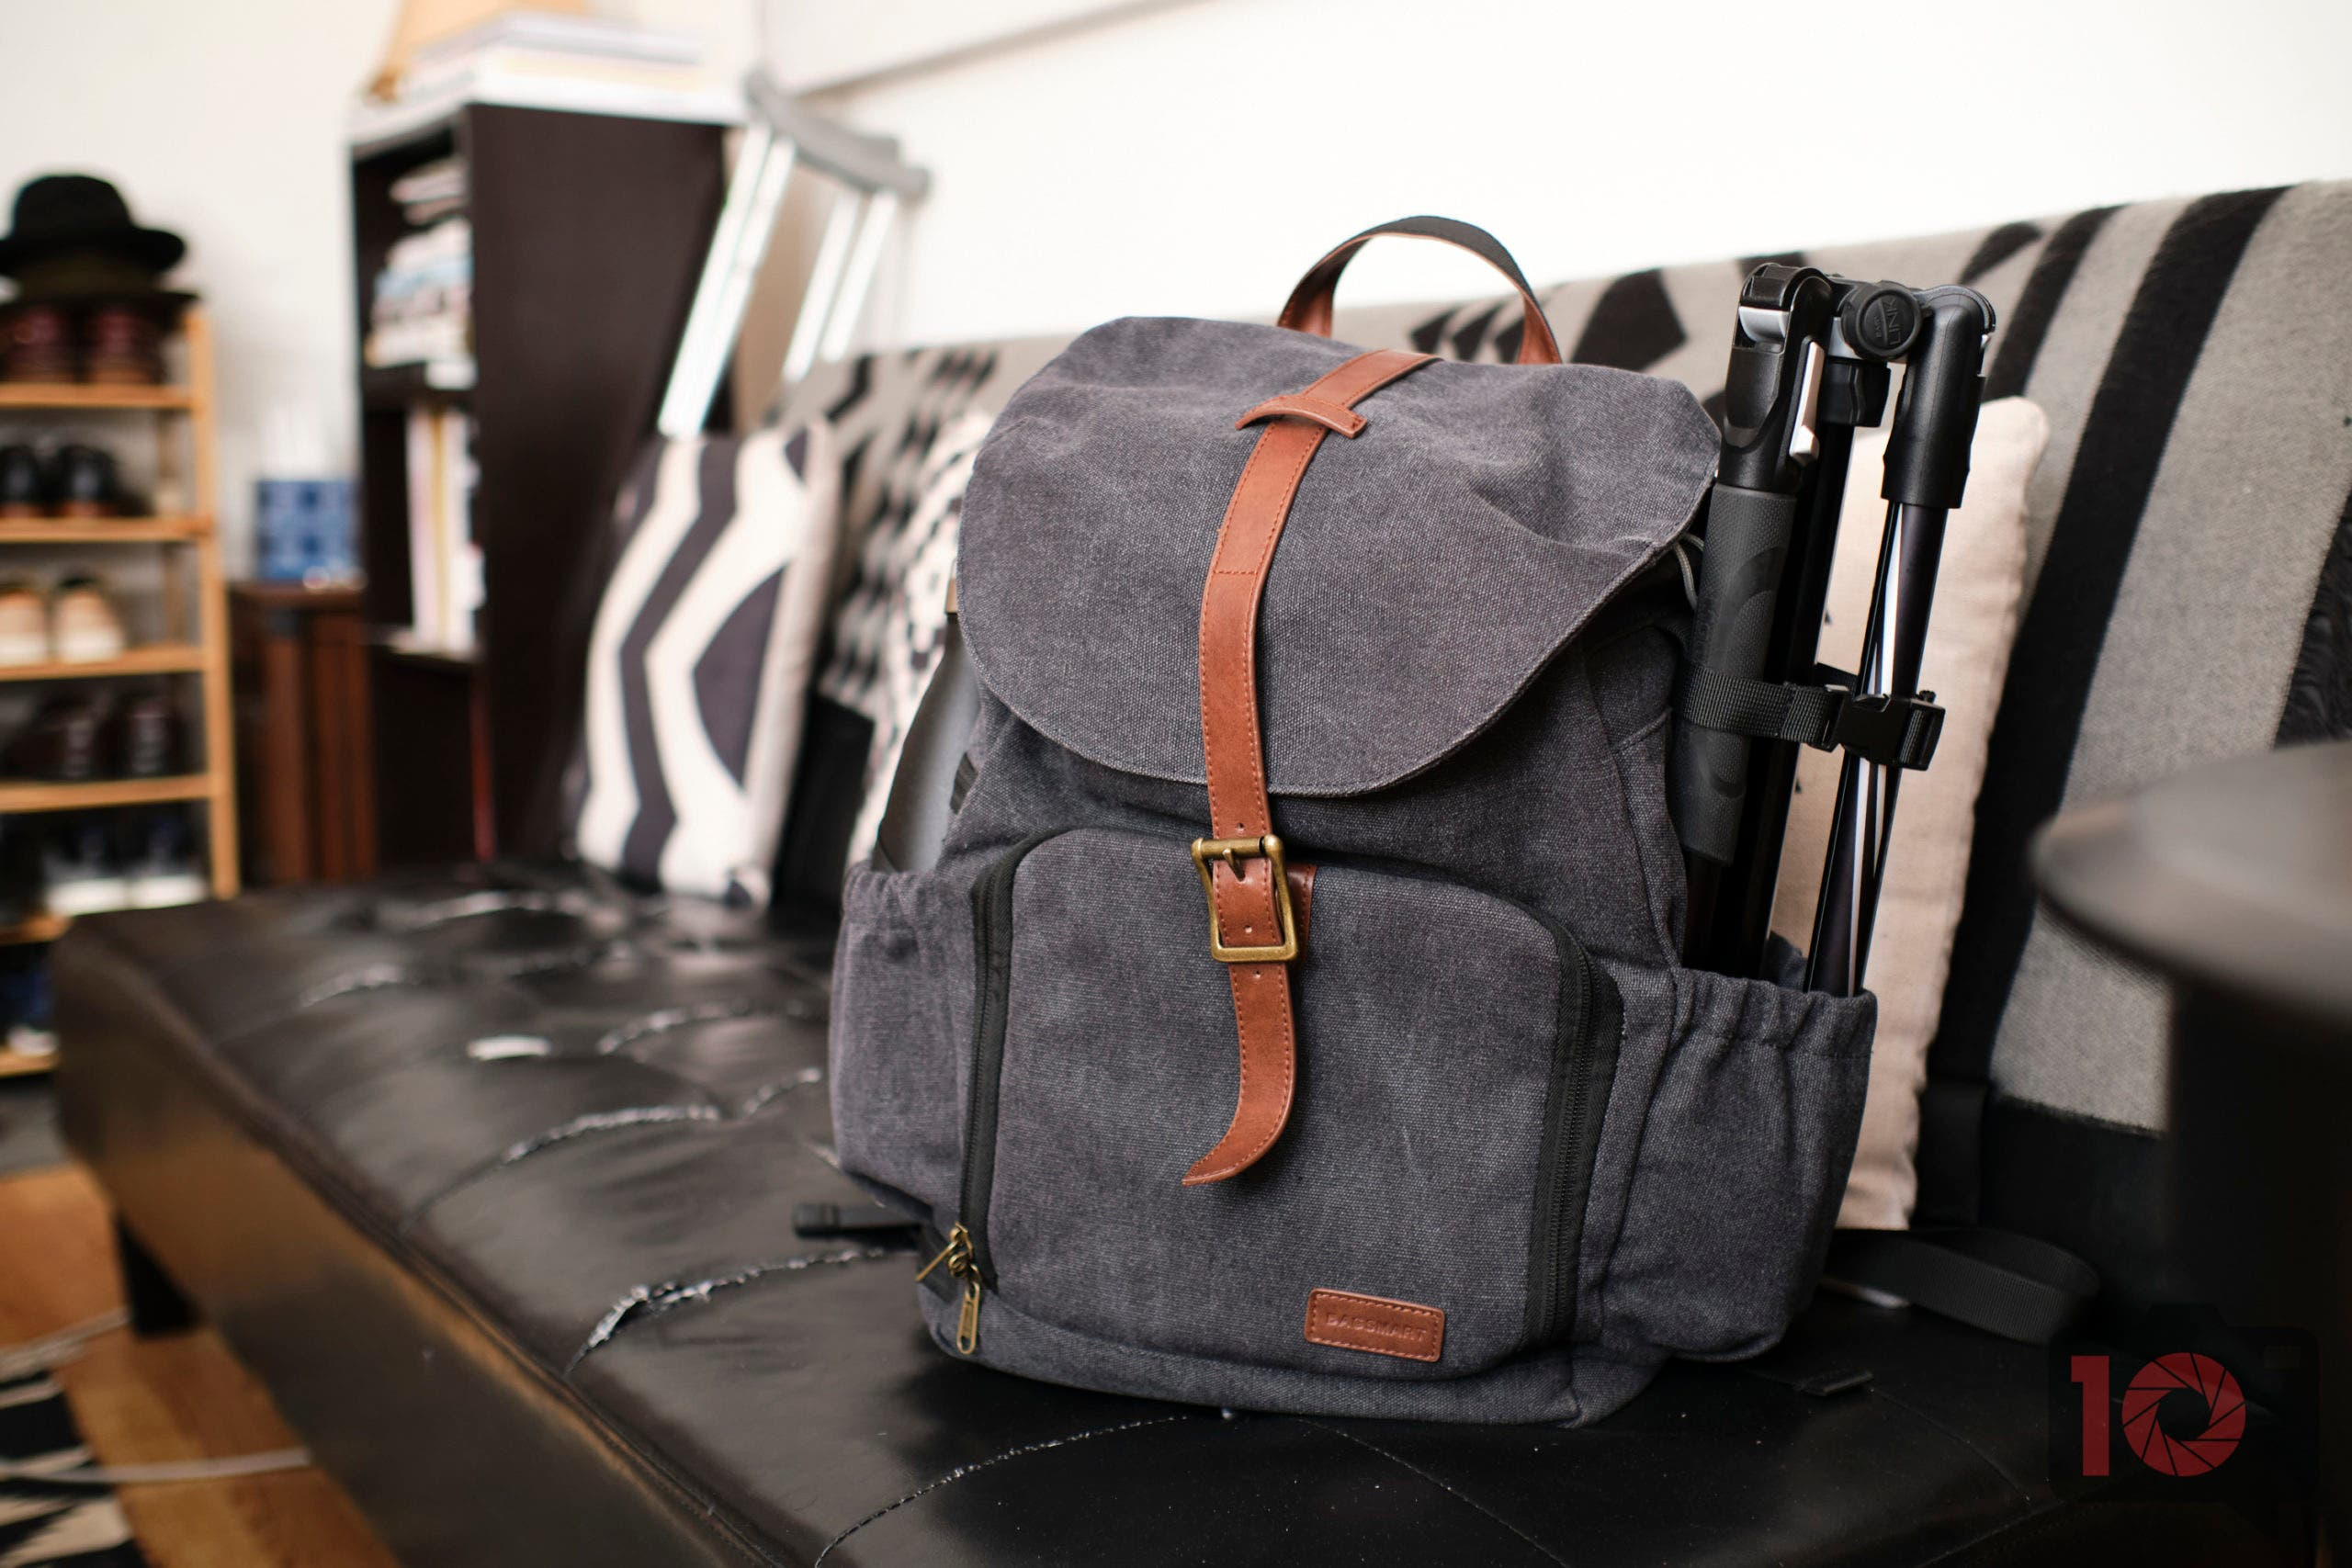 Less Than $65 and Great! The BAGSMART Camera Backpack Review